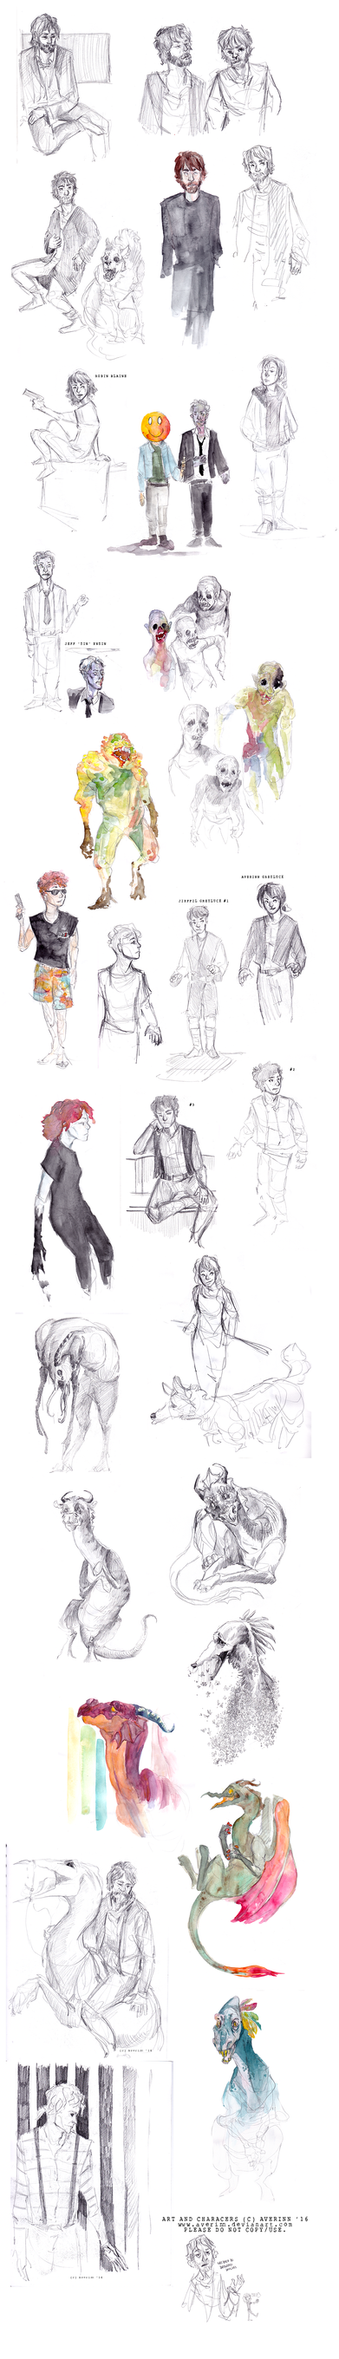 Sketchdump 003 by Averinn